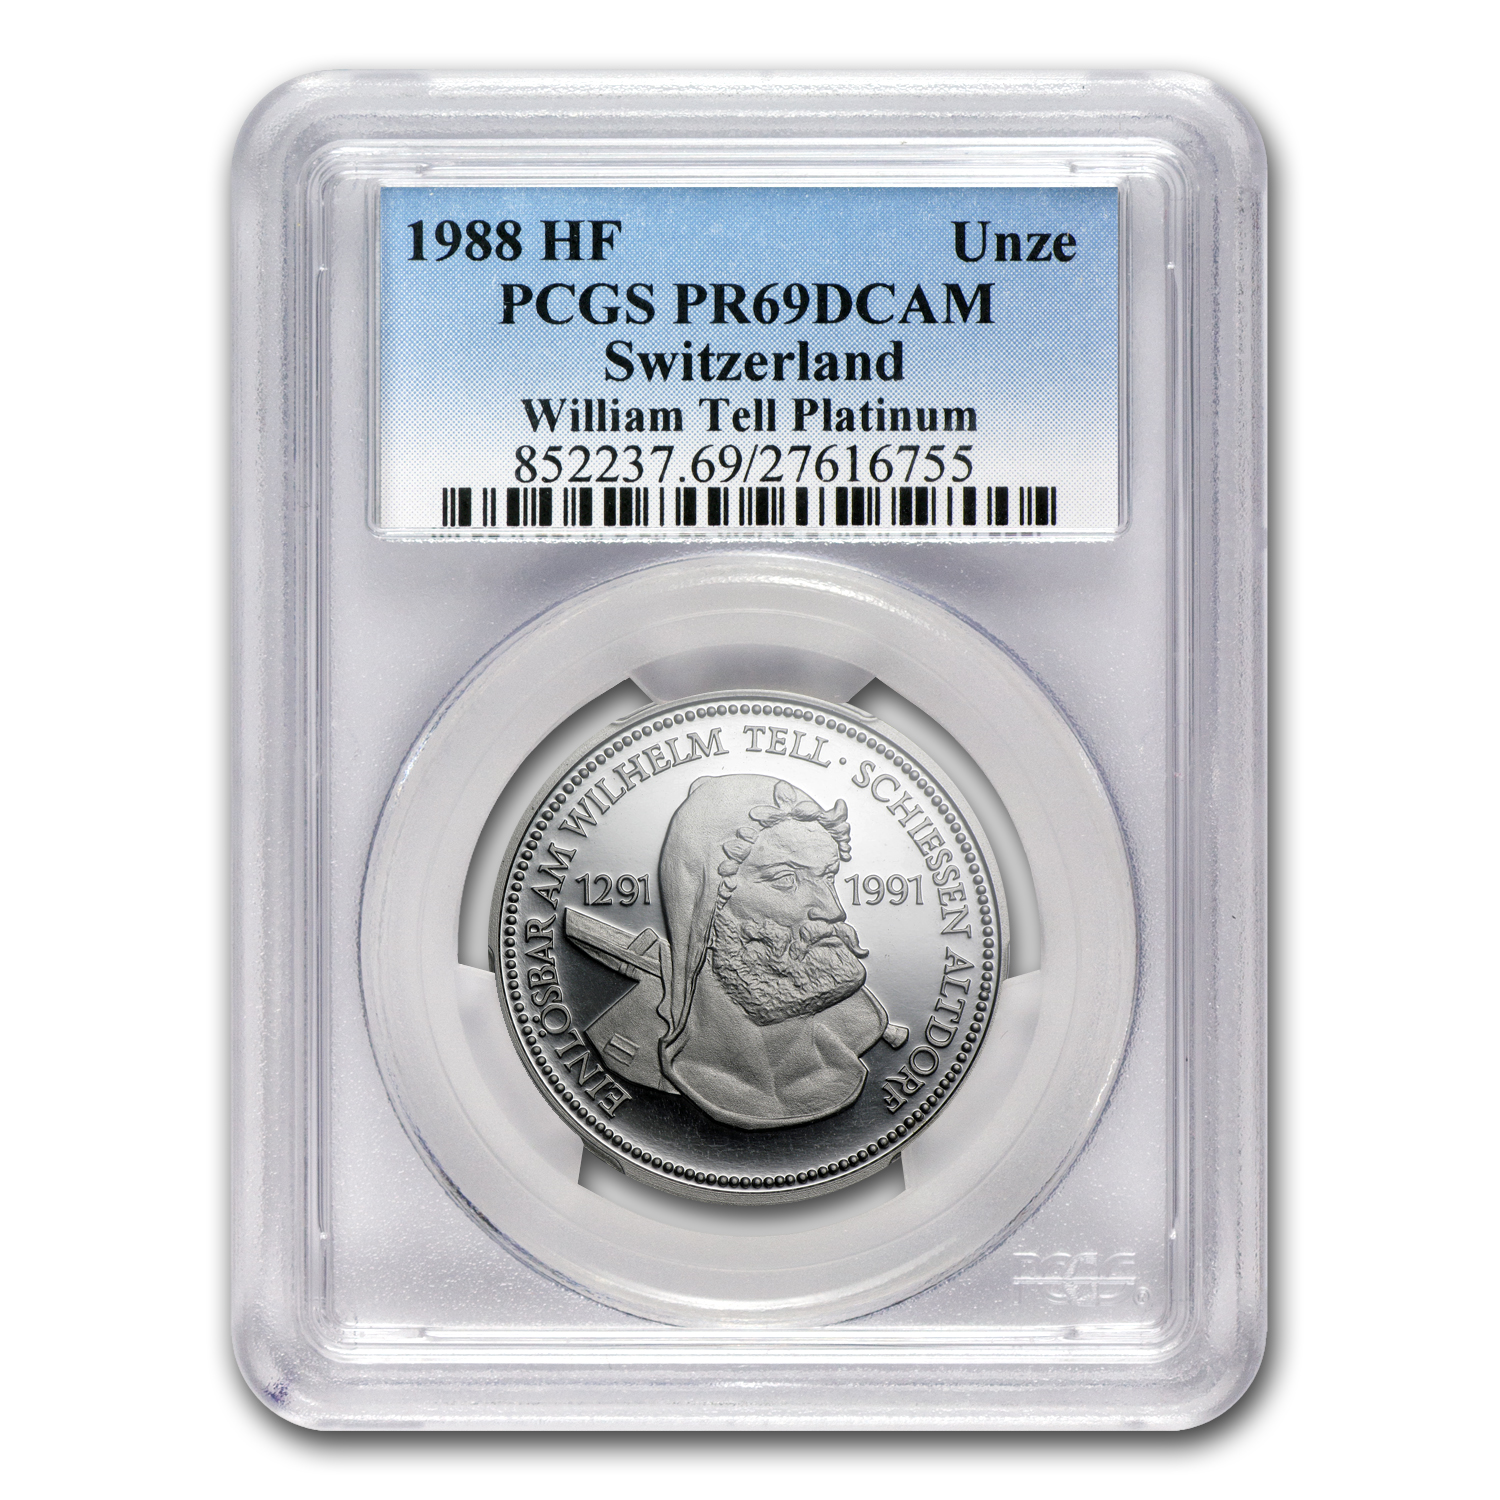 1988 Switzerland 1 oz Proof Platinum William Tell PR-69 PCGS